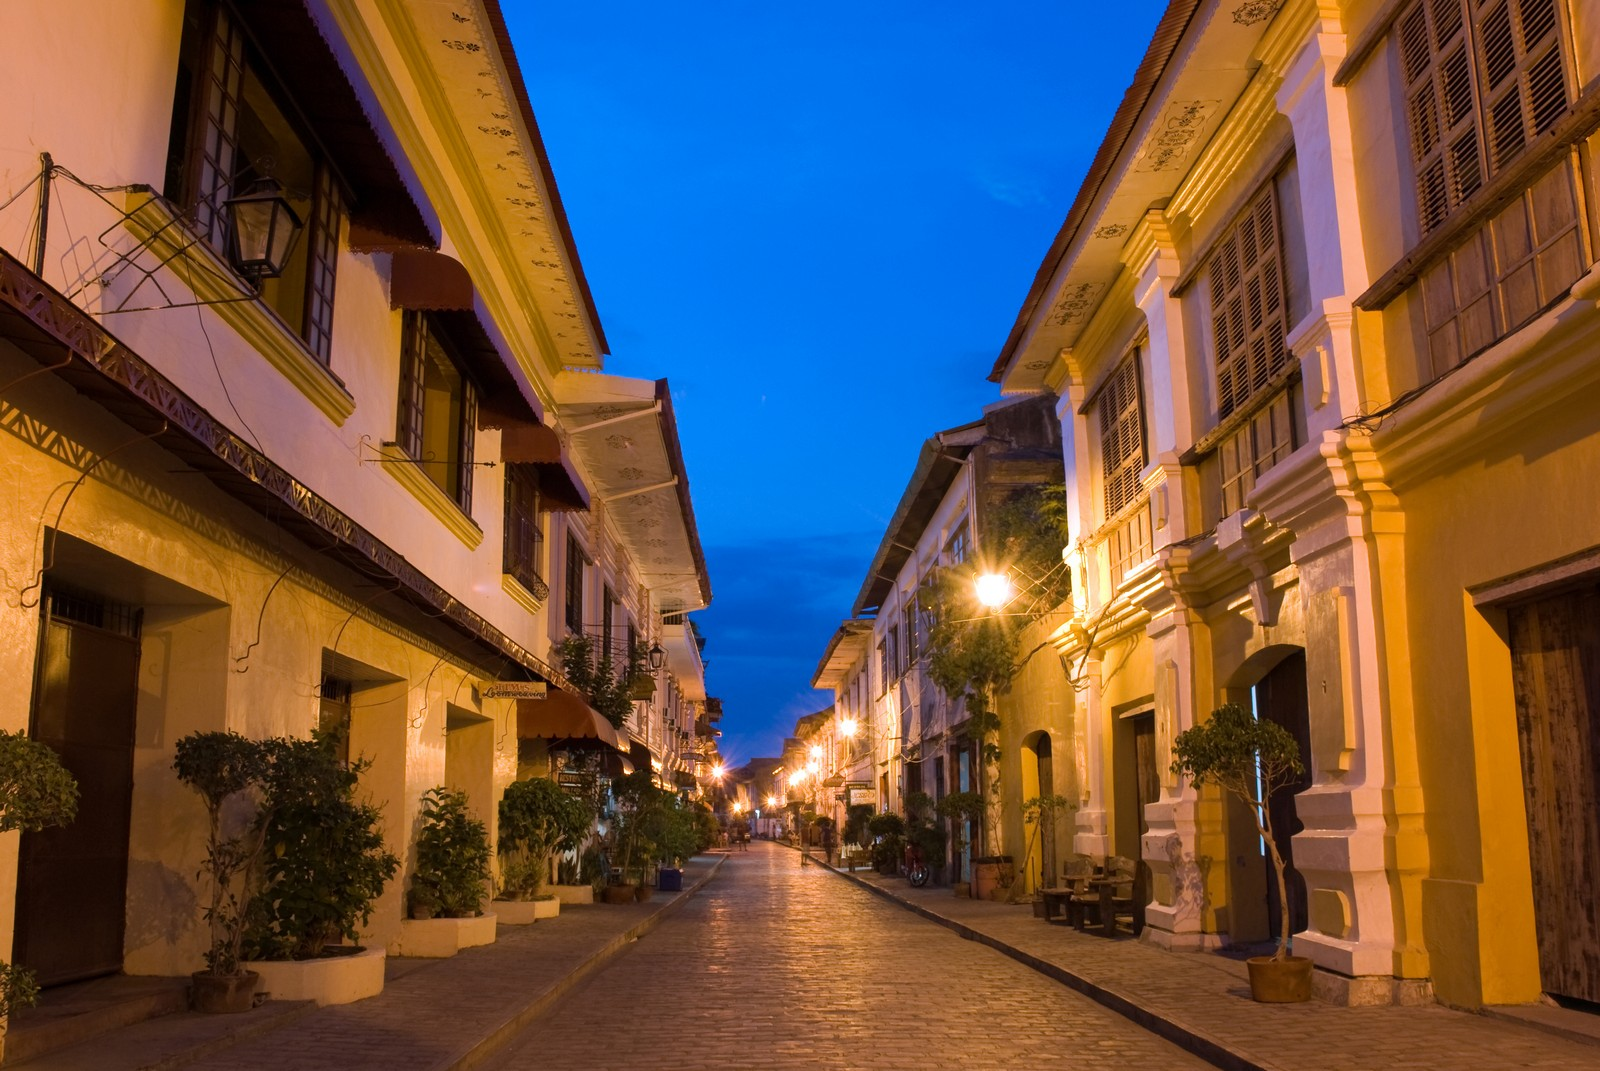 Quiet streets of Calle Crisologo at night